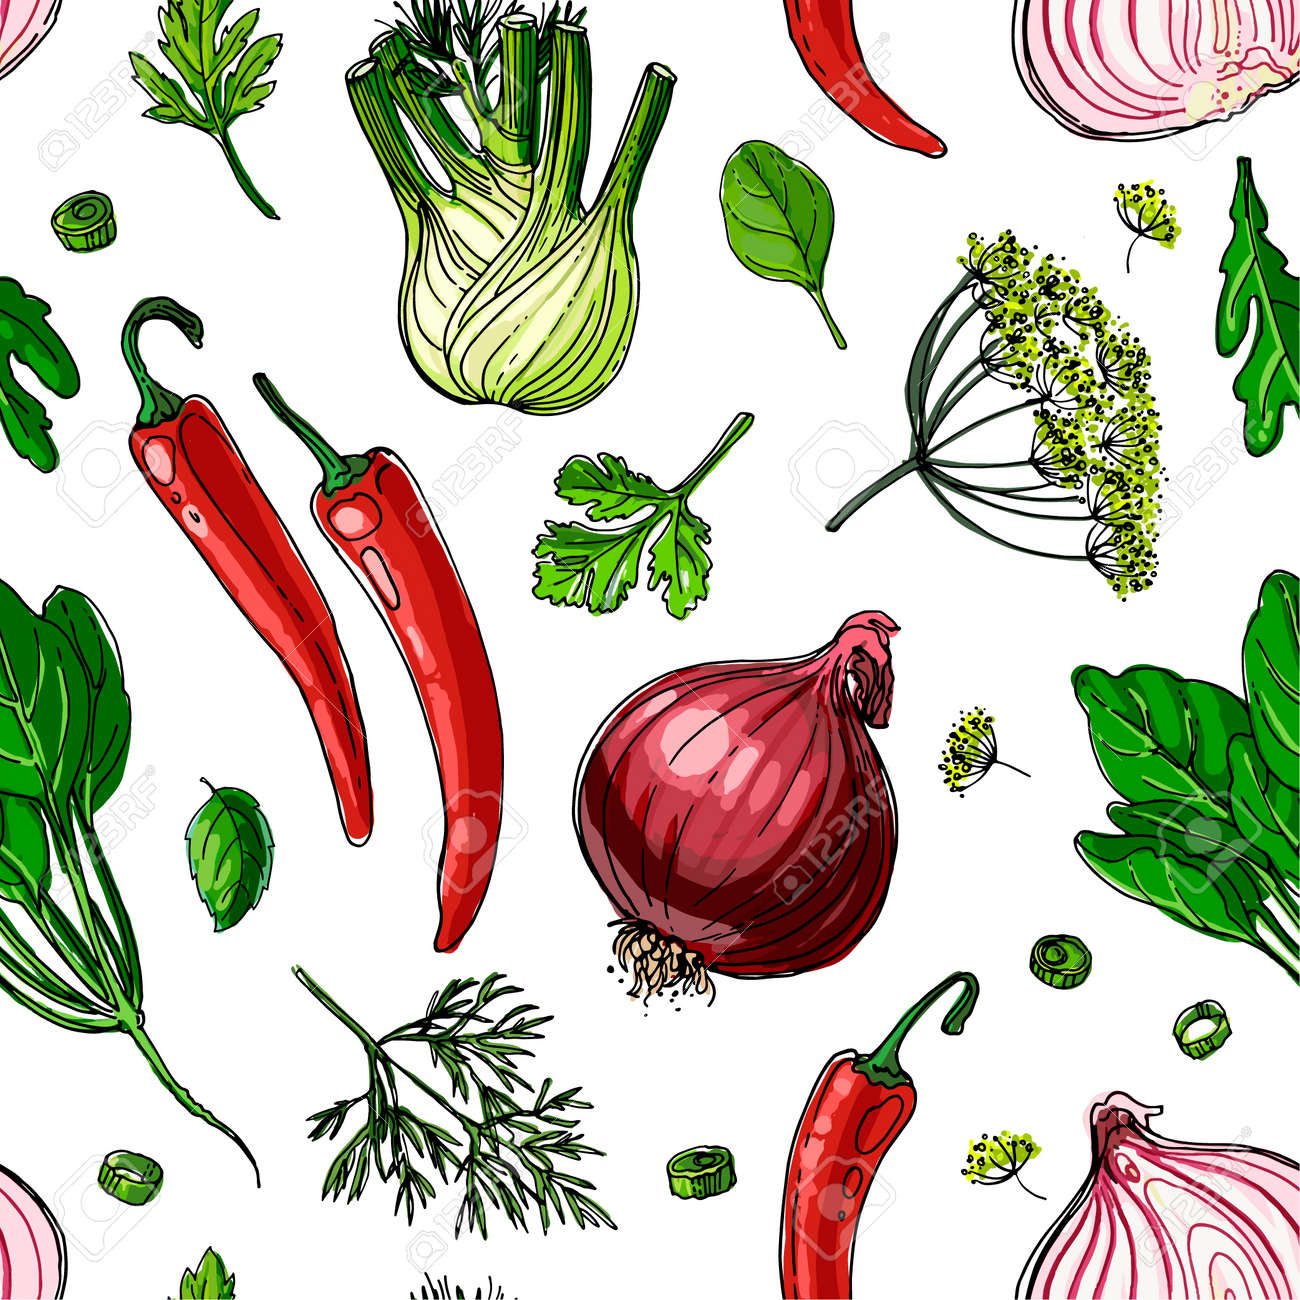 The pattern of painted colored vegetables line drawn on a white background. Sketch autumn harvest. - 173006146